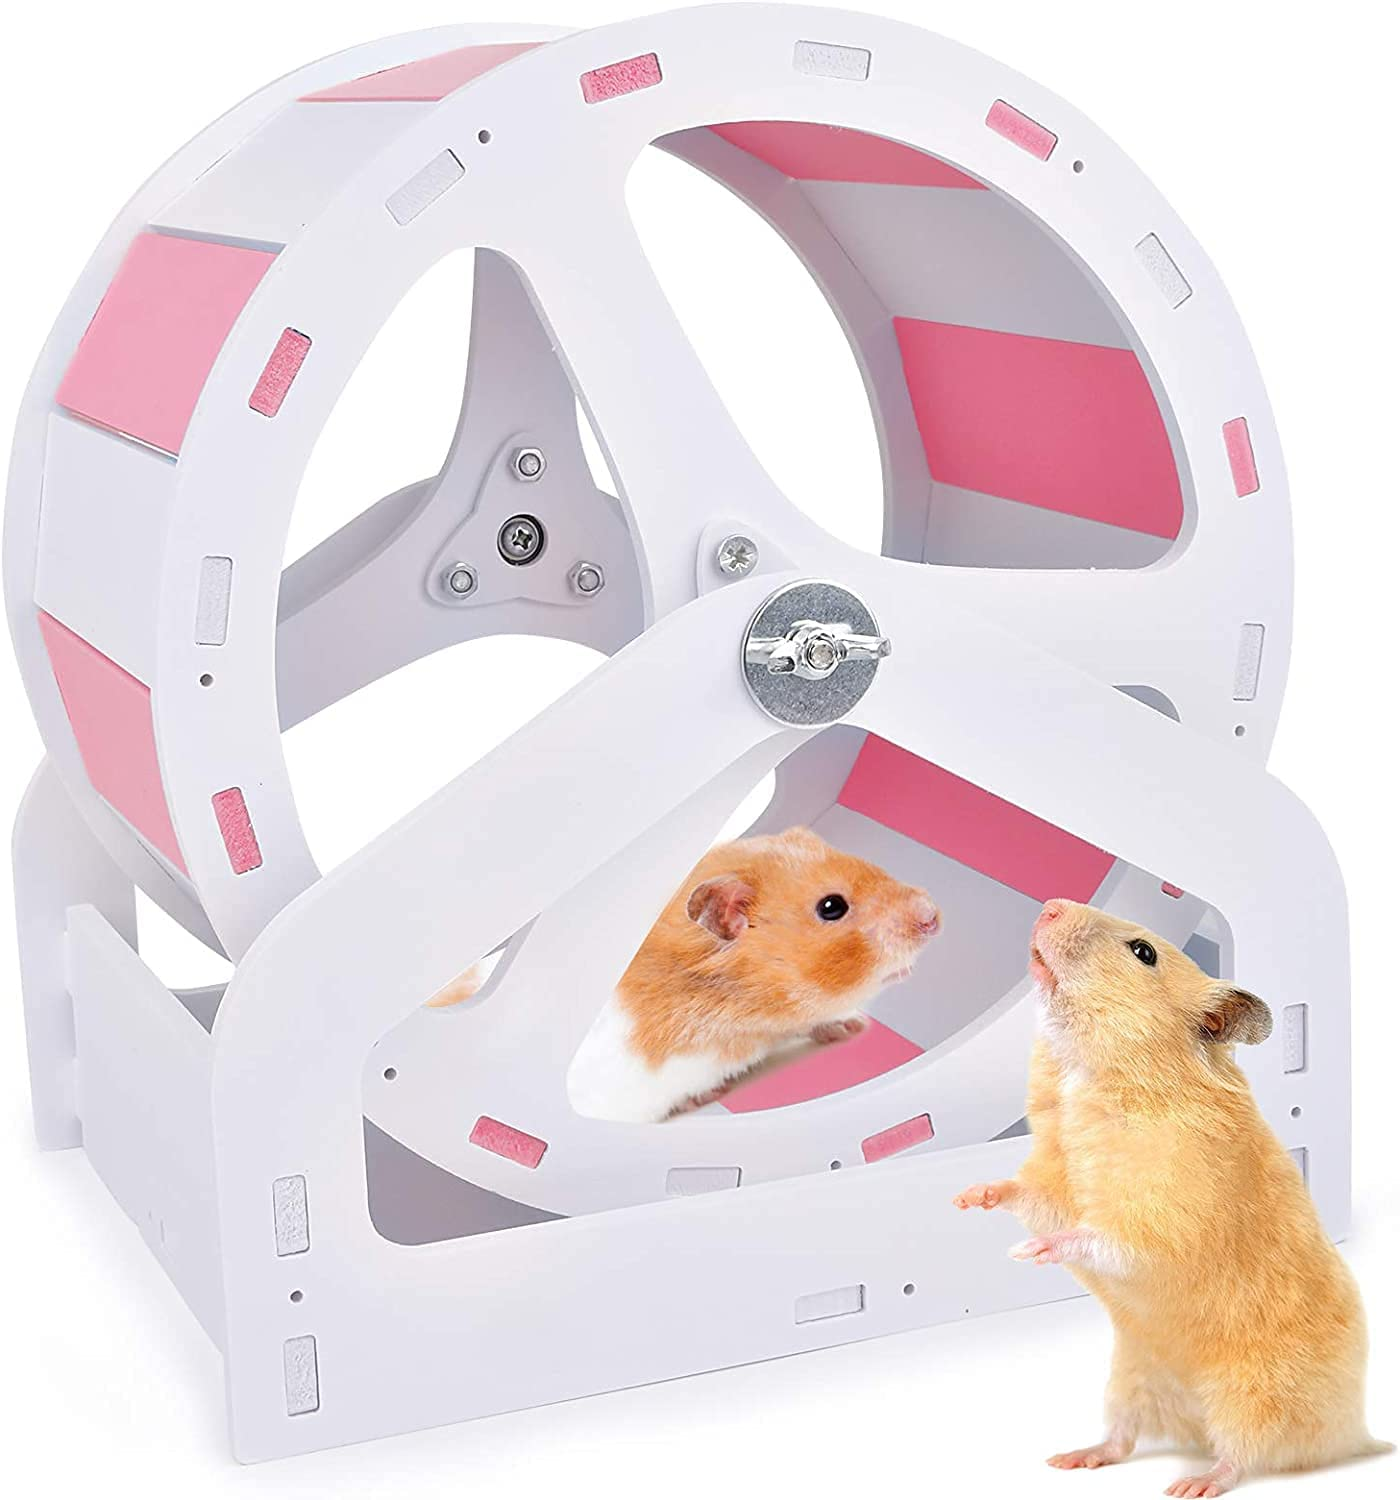 Super Silent Runner Hamster Exercise Rare Adjustable Omaha Mall with Stan Wheels